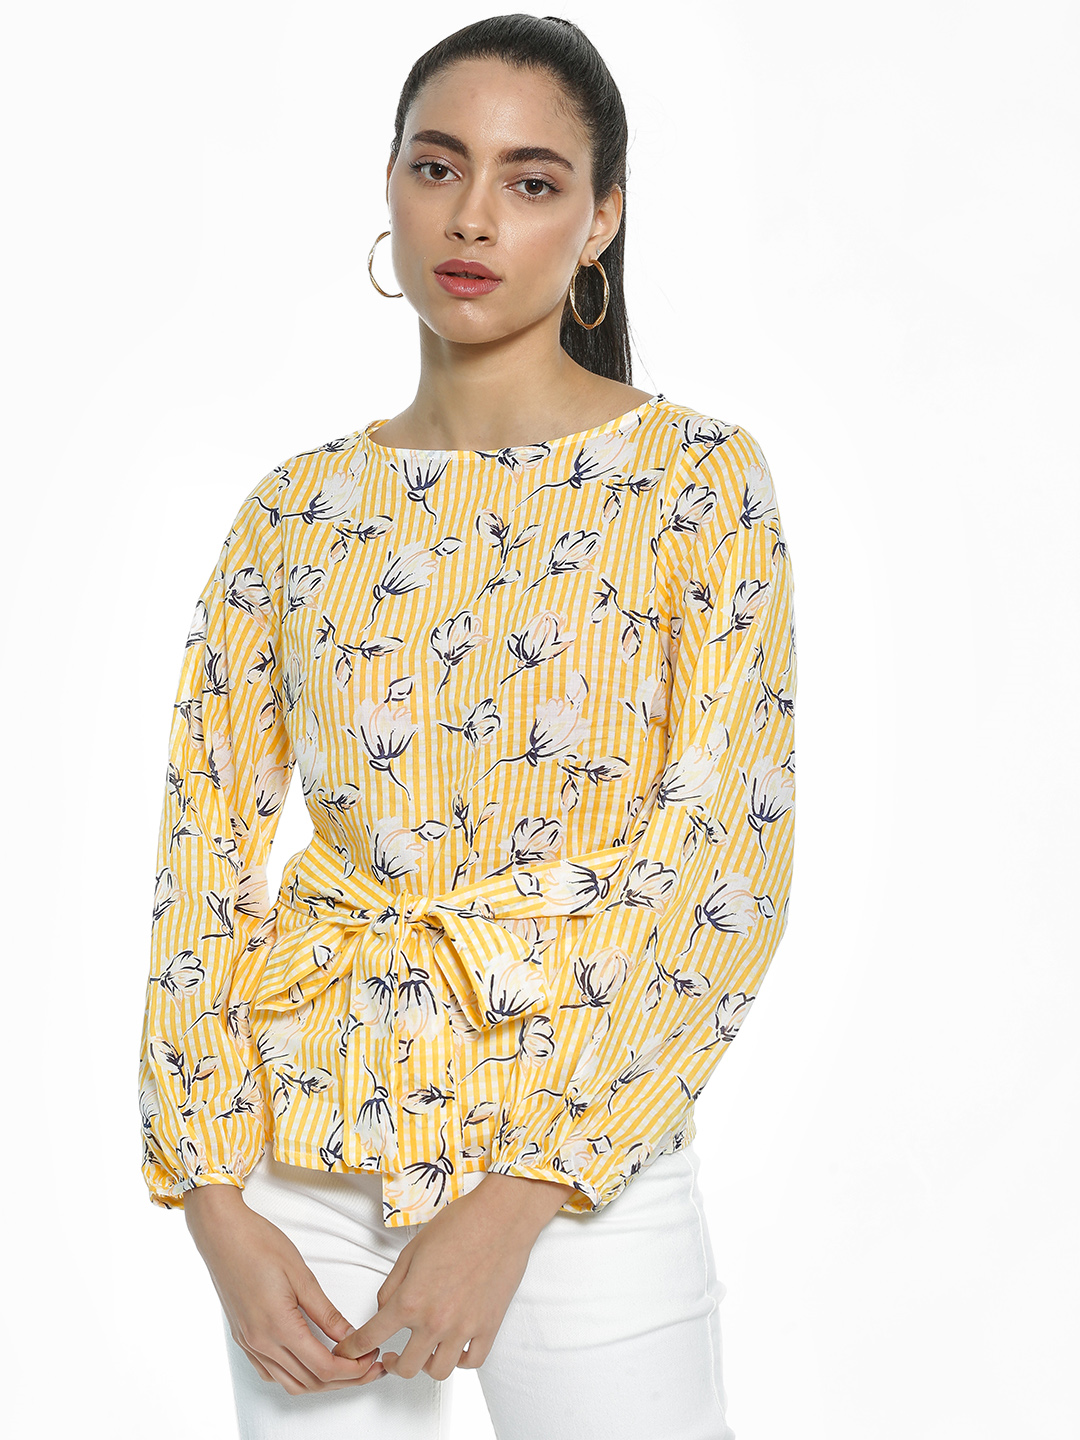 AND Yellow Stripe Floral Print Tie-Up Blouse 1